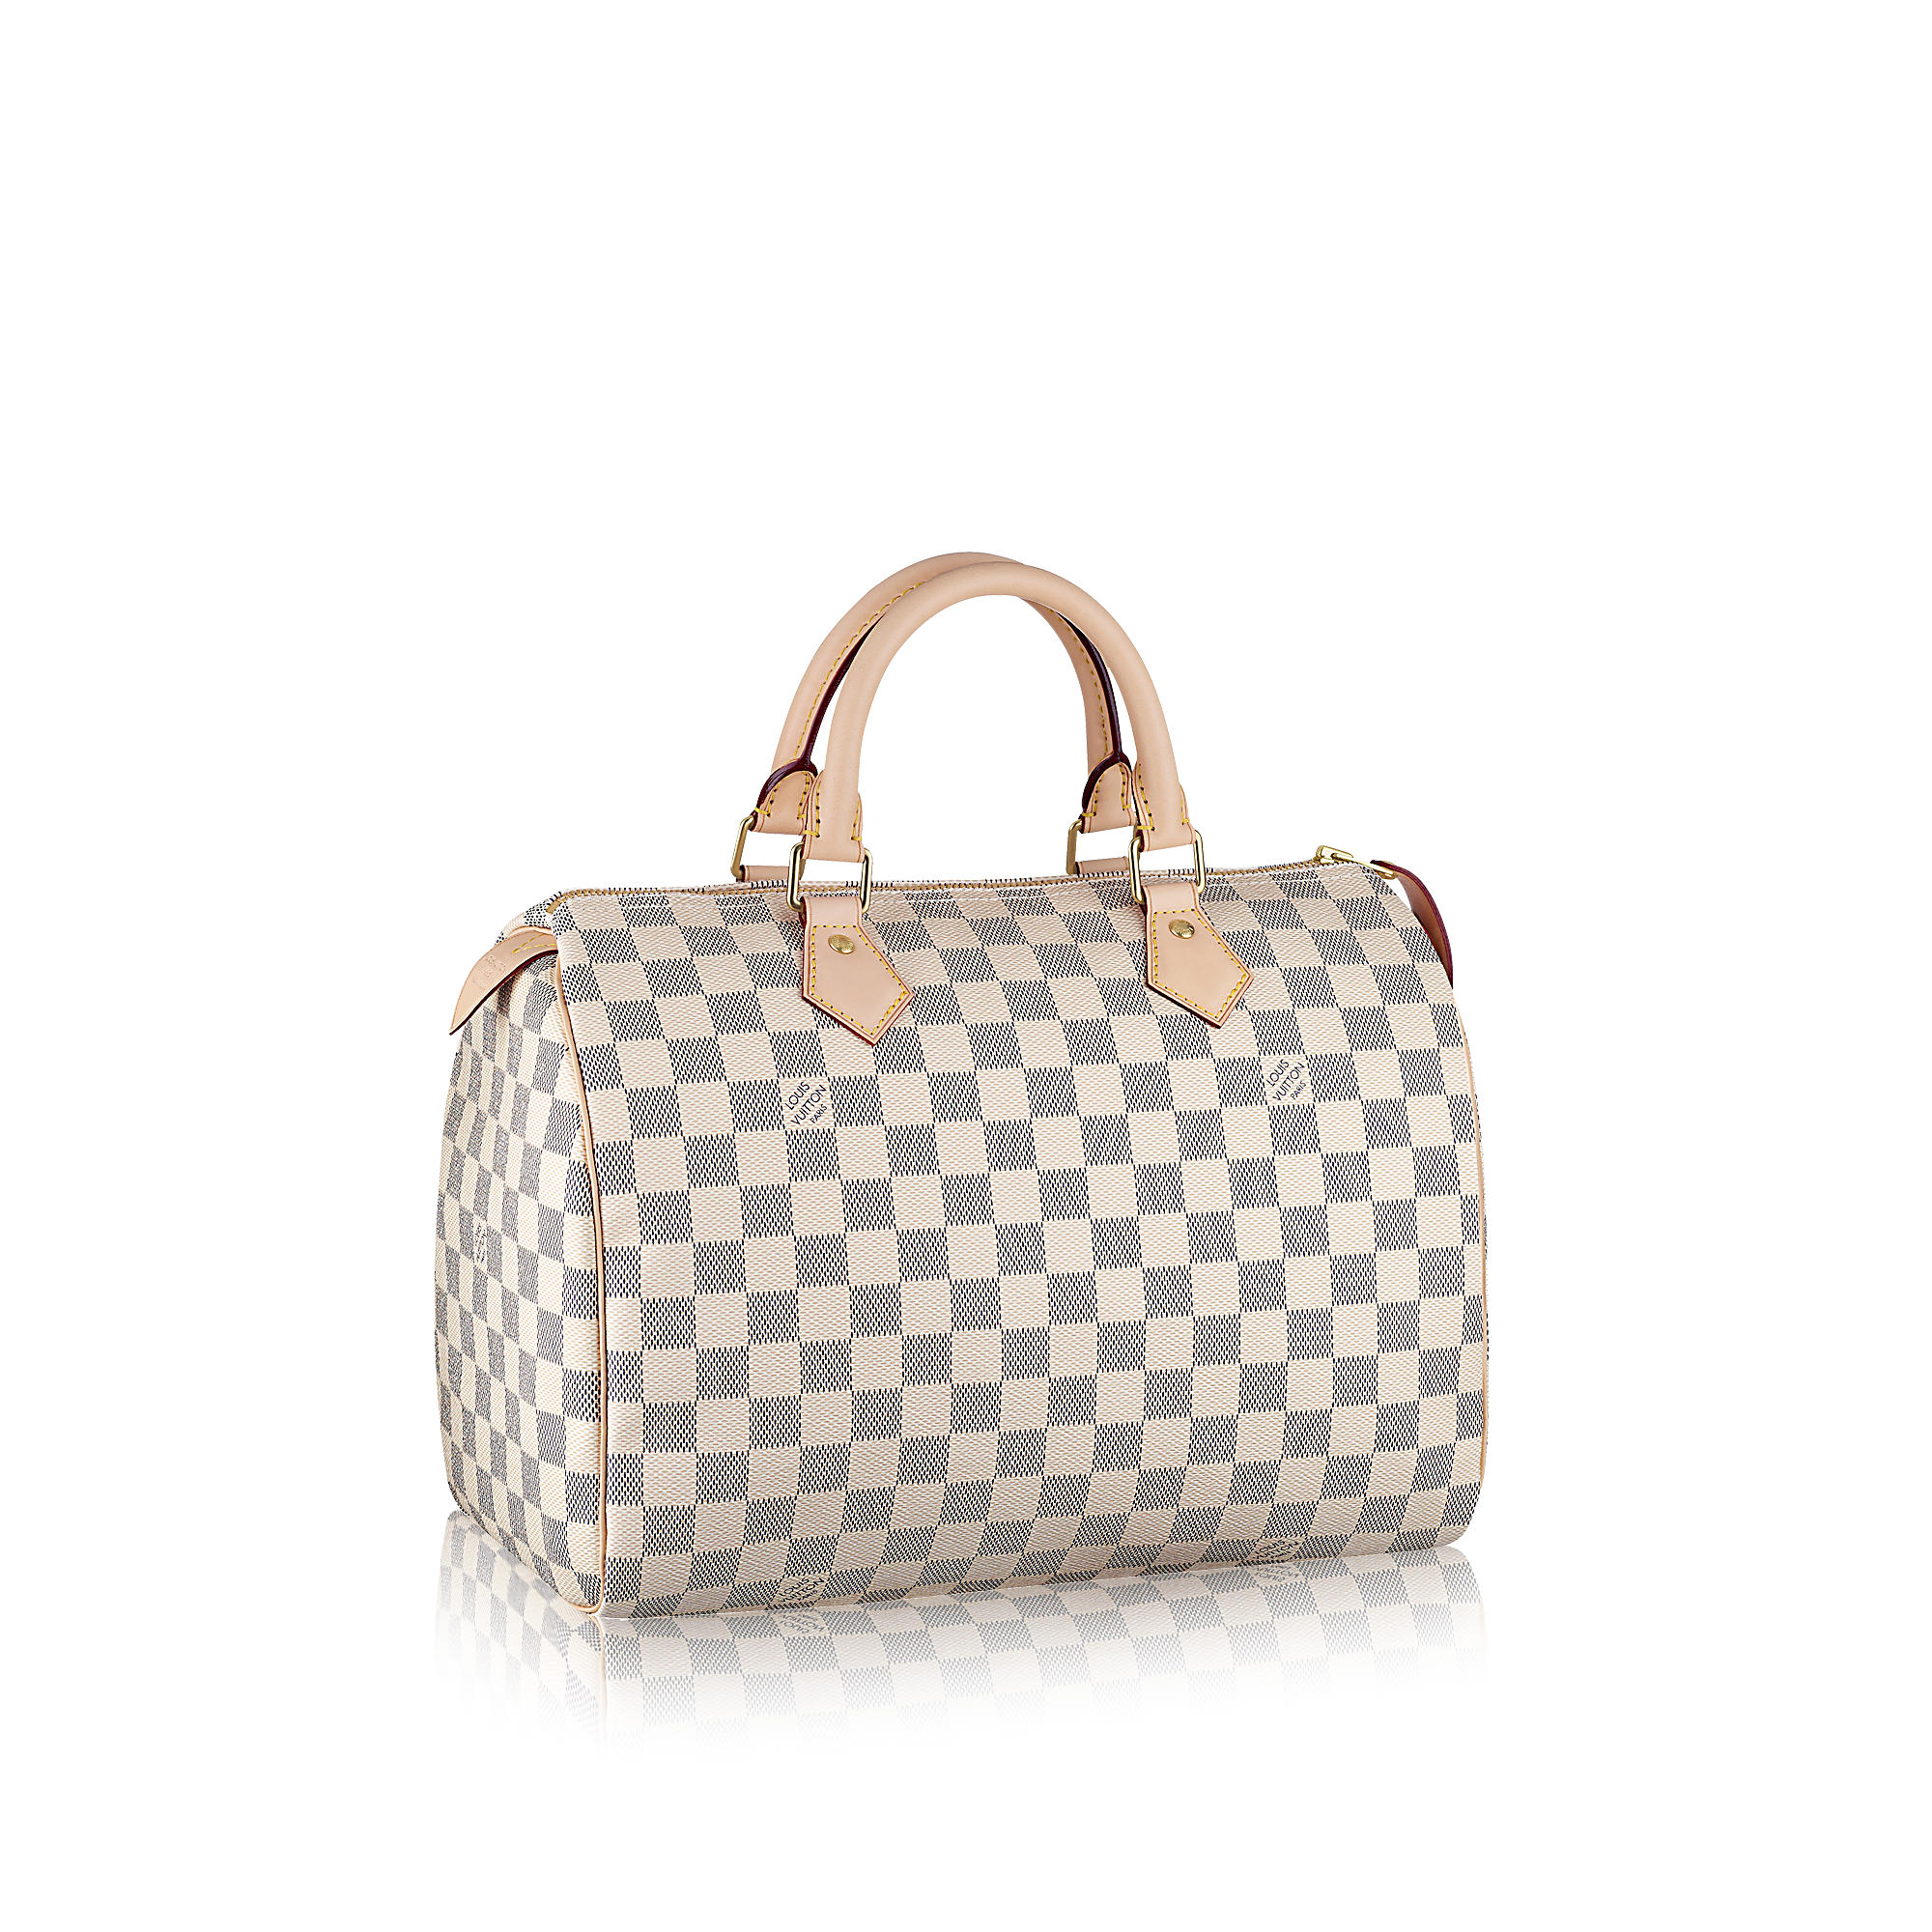 fea712a160f6  1300 Louis Vuitton Damier Azur White Checker Speedy 30 Tote Bag ...